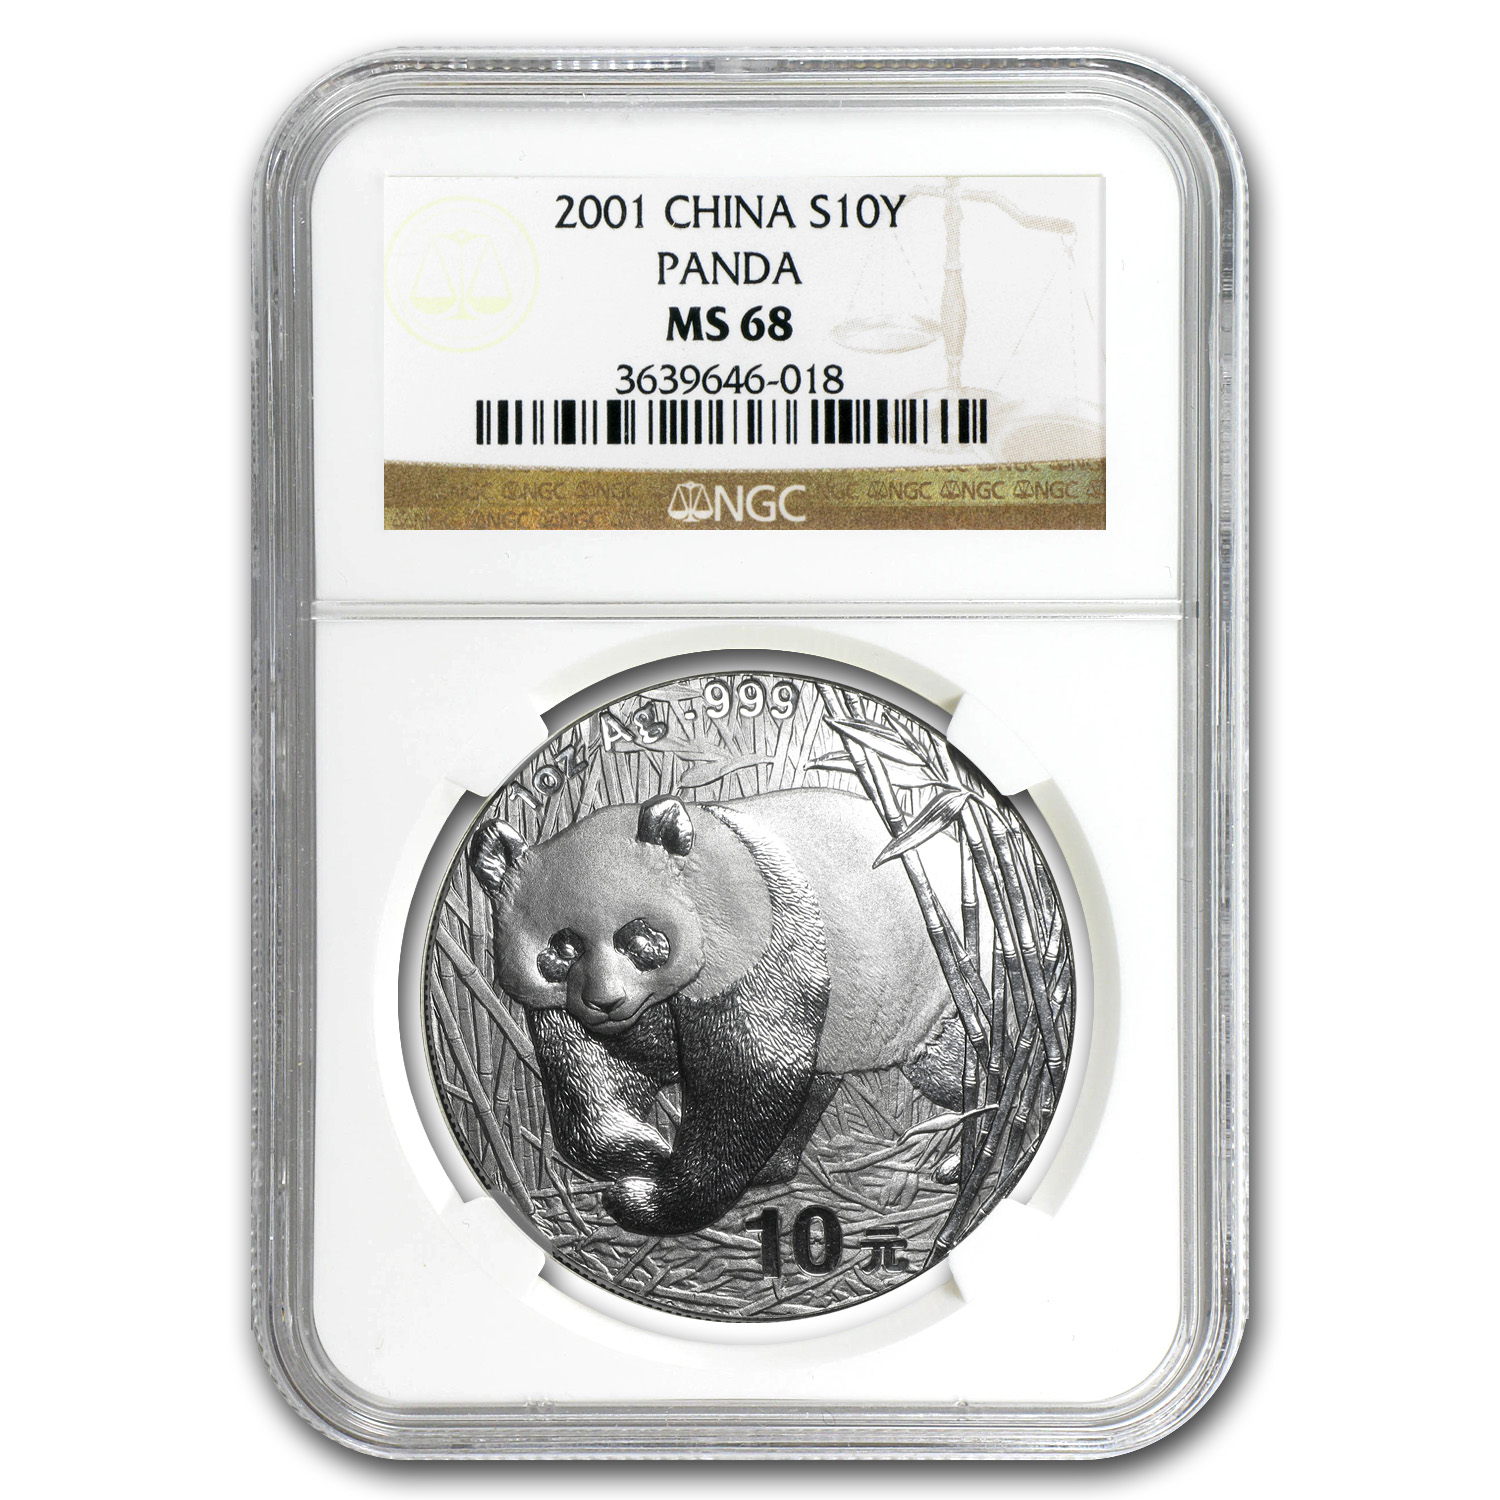 2001 China 1 oz Silver Panda MS-68 NGC